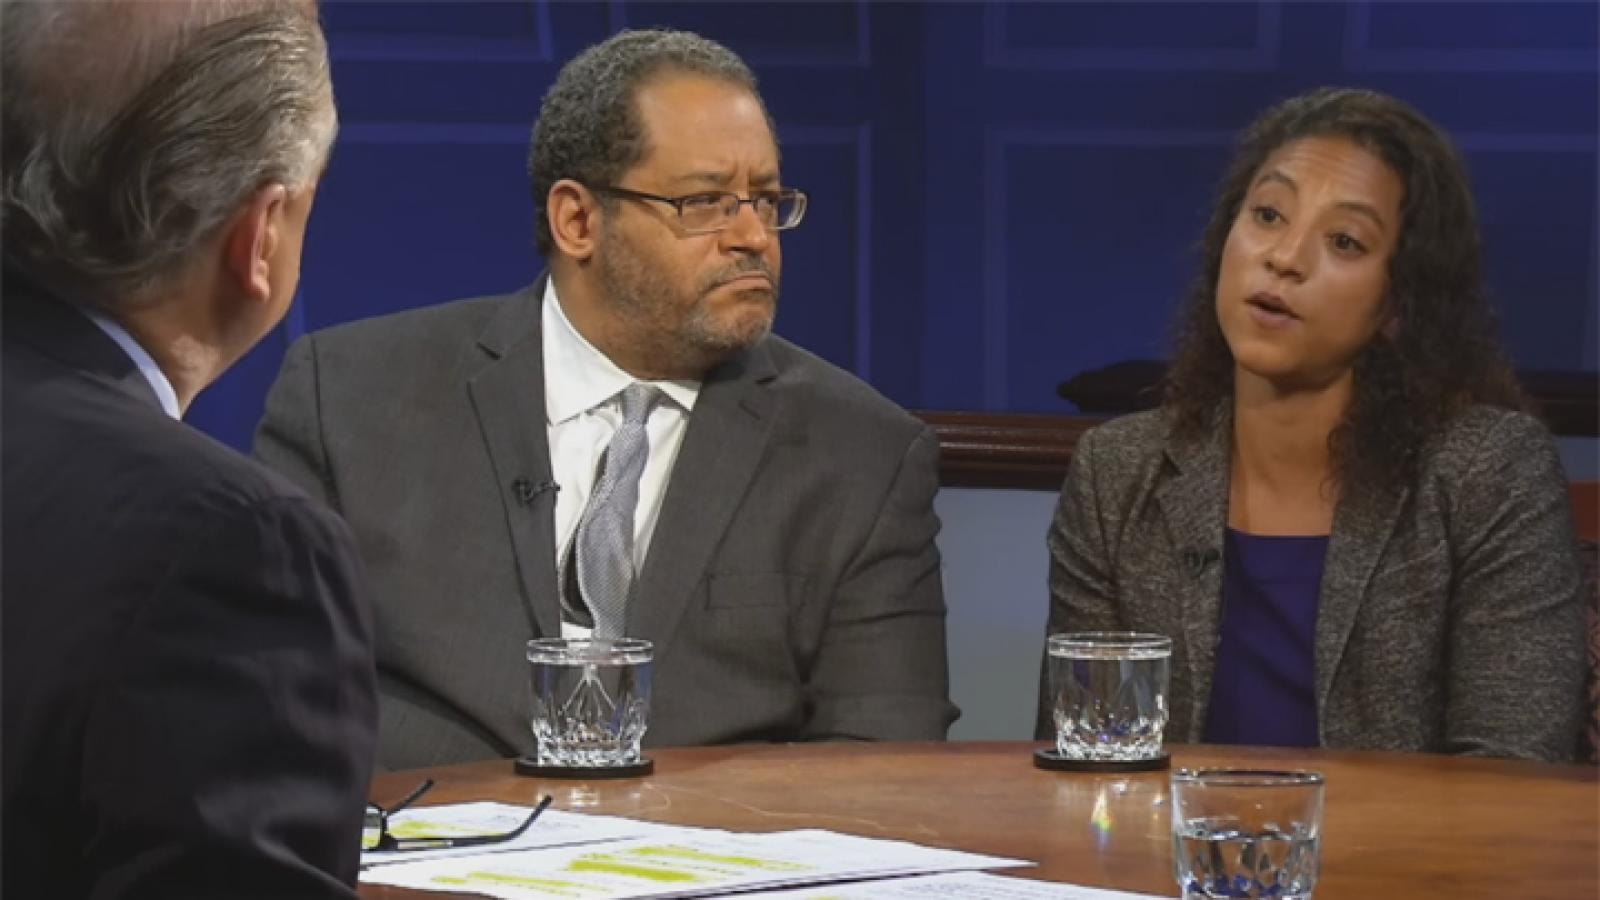 Elizabeth Hinton and Michael Eric Dyson